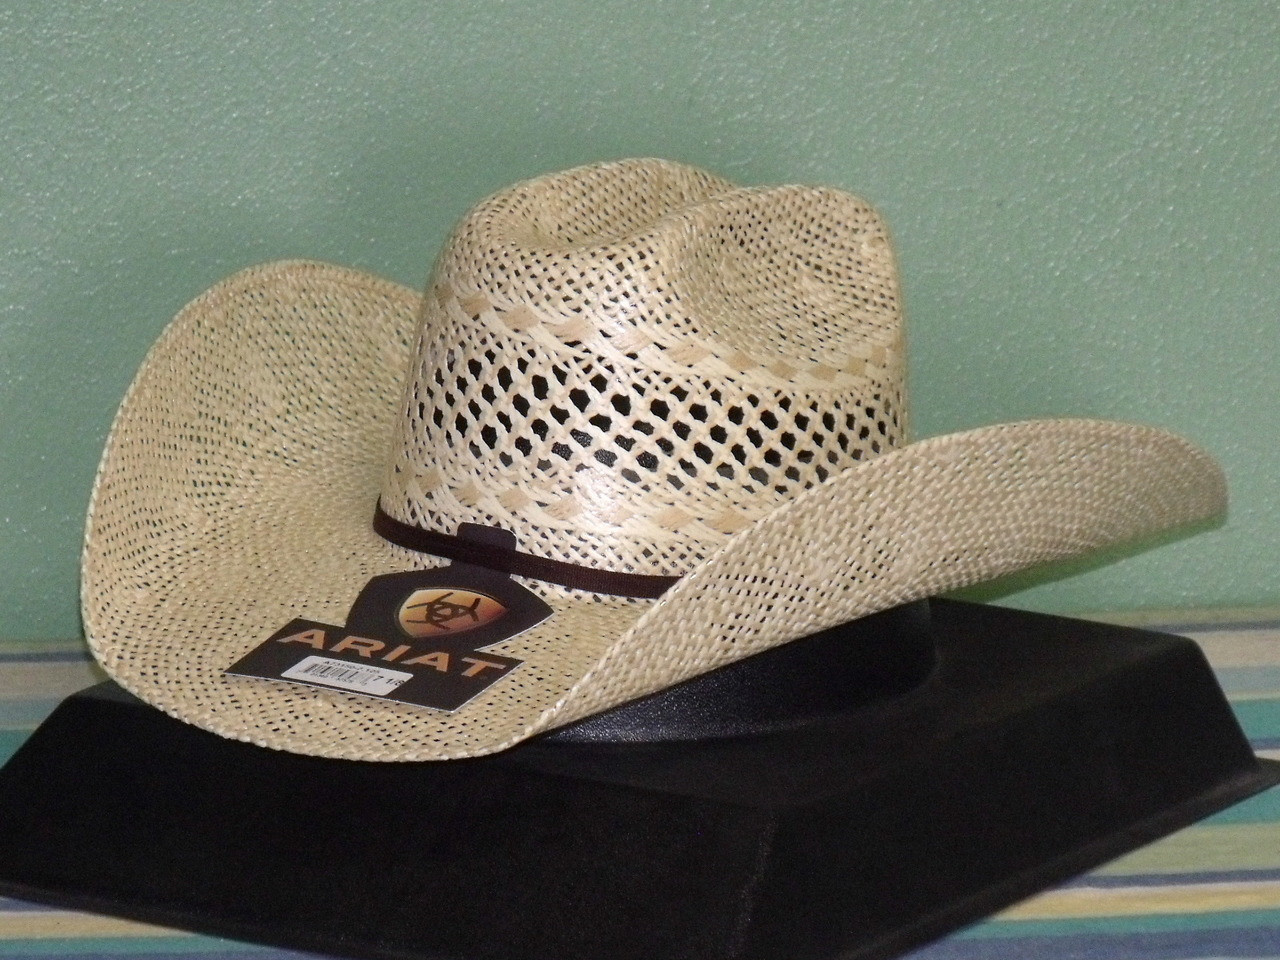 473023e5c7099 Ariat A73150 Twisted Weave Straw Cowboy Hat - One 2 mini Ranch